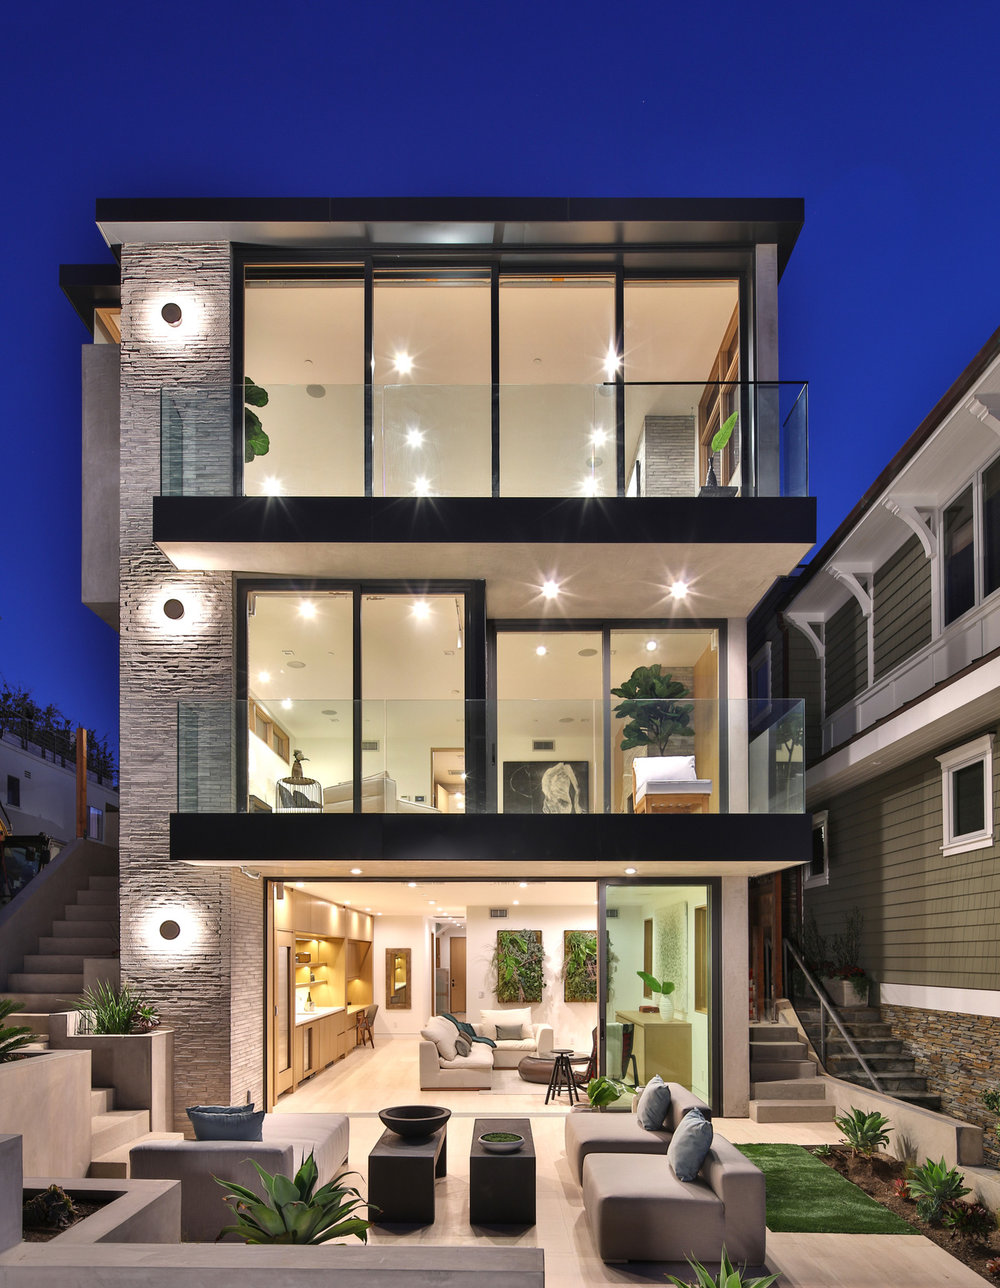 exterior-manhattan-beach-house-stone-facade-silicon-bay.jpg